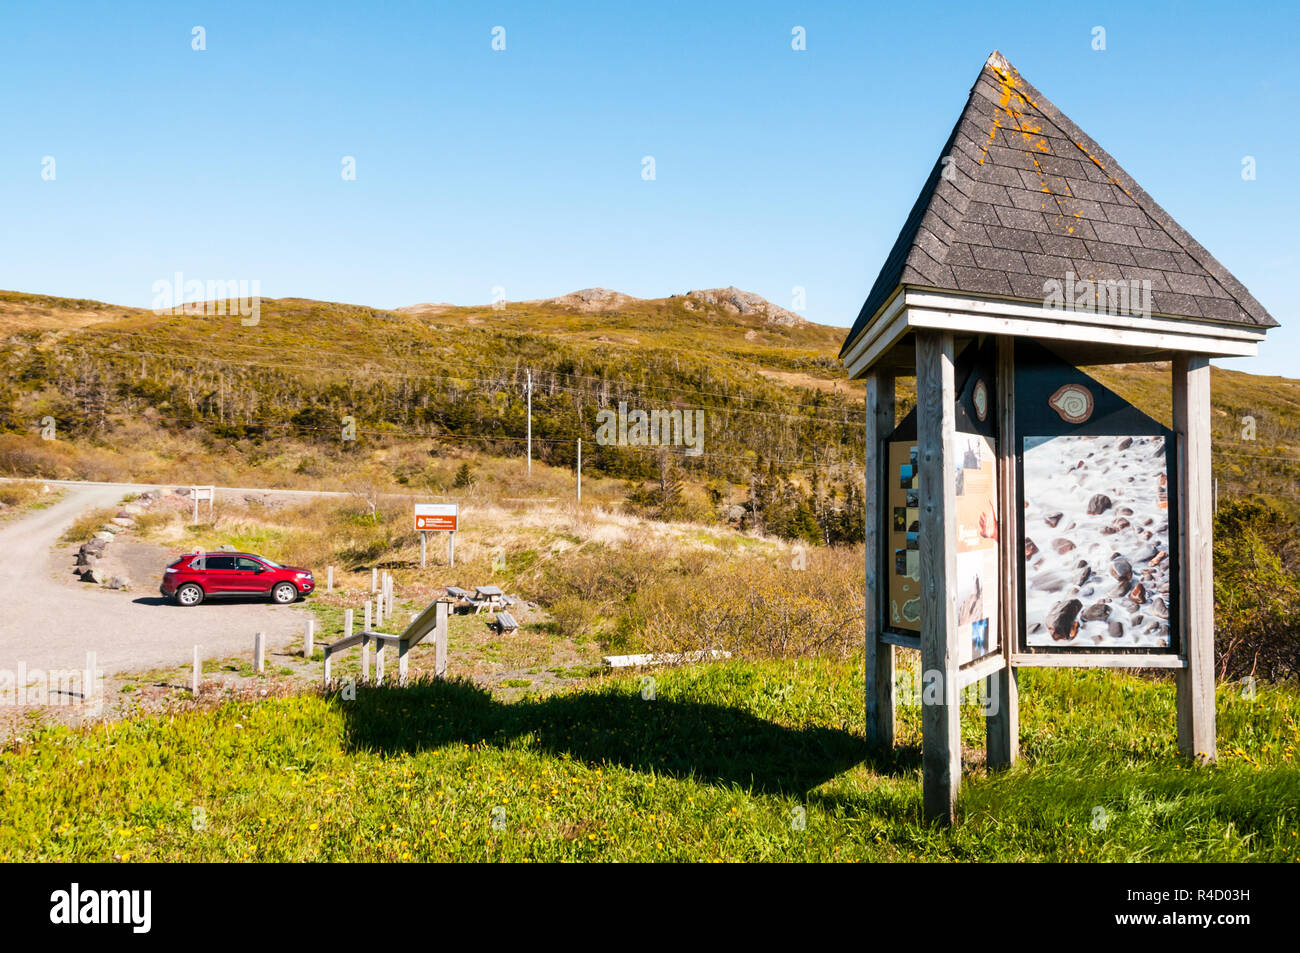 Interpretive boards containing geological information on the Burin Peninsula near Fortune Head, Newfoundland. Stock Photo